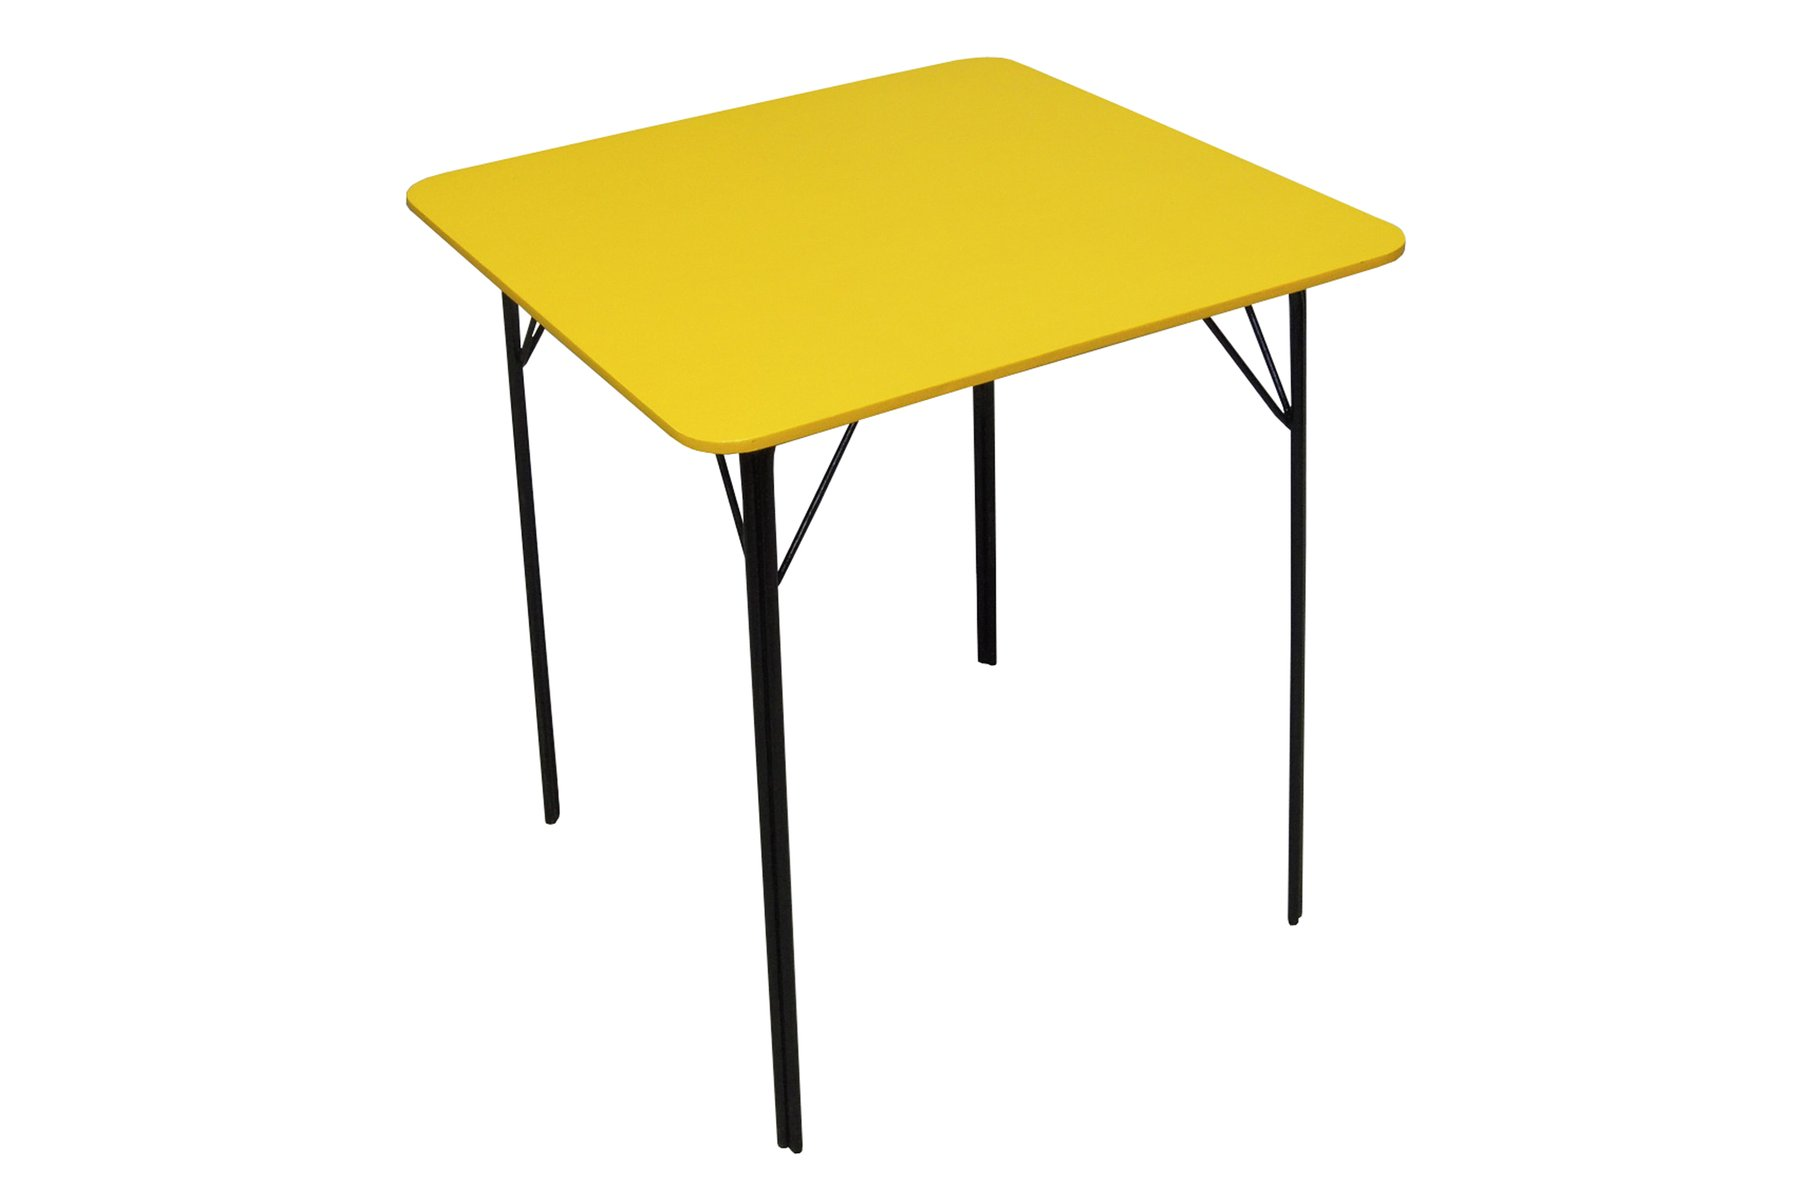 Vintage Yellow Dining Table for sale at Pamono : vintage yellow dining table 3 from www.pamono.co.uk size 1800 x 1200 jpeg 37kB